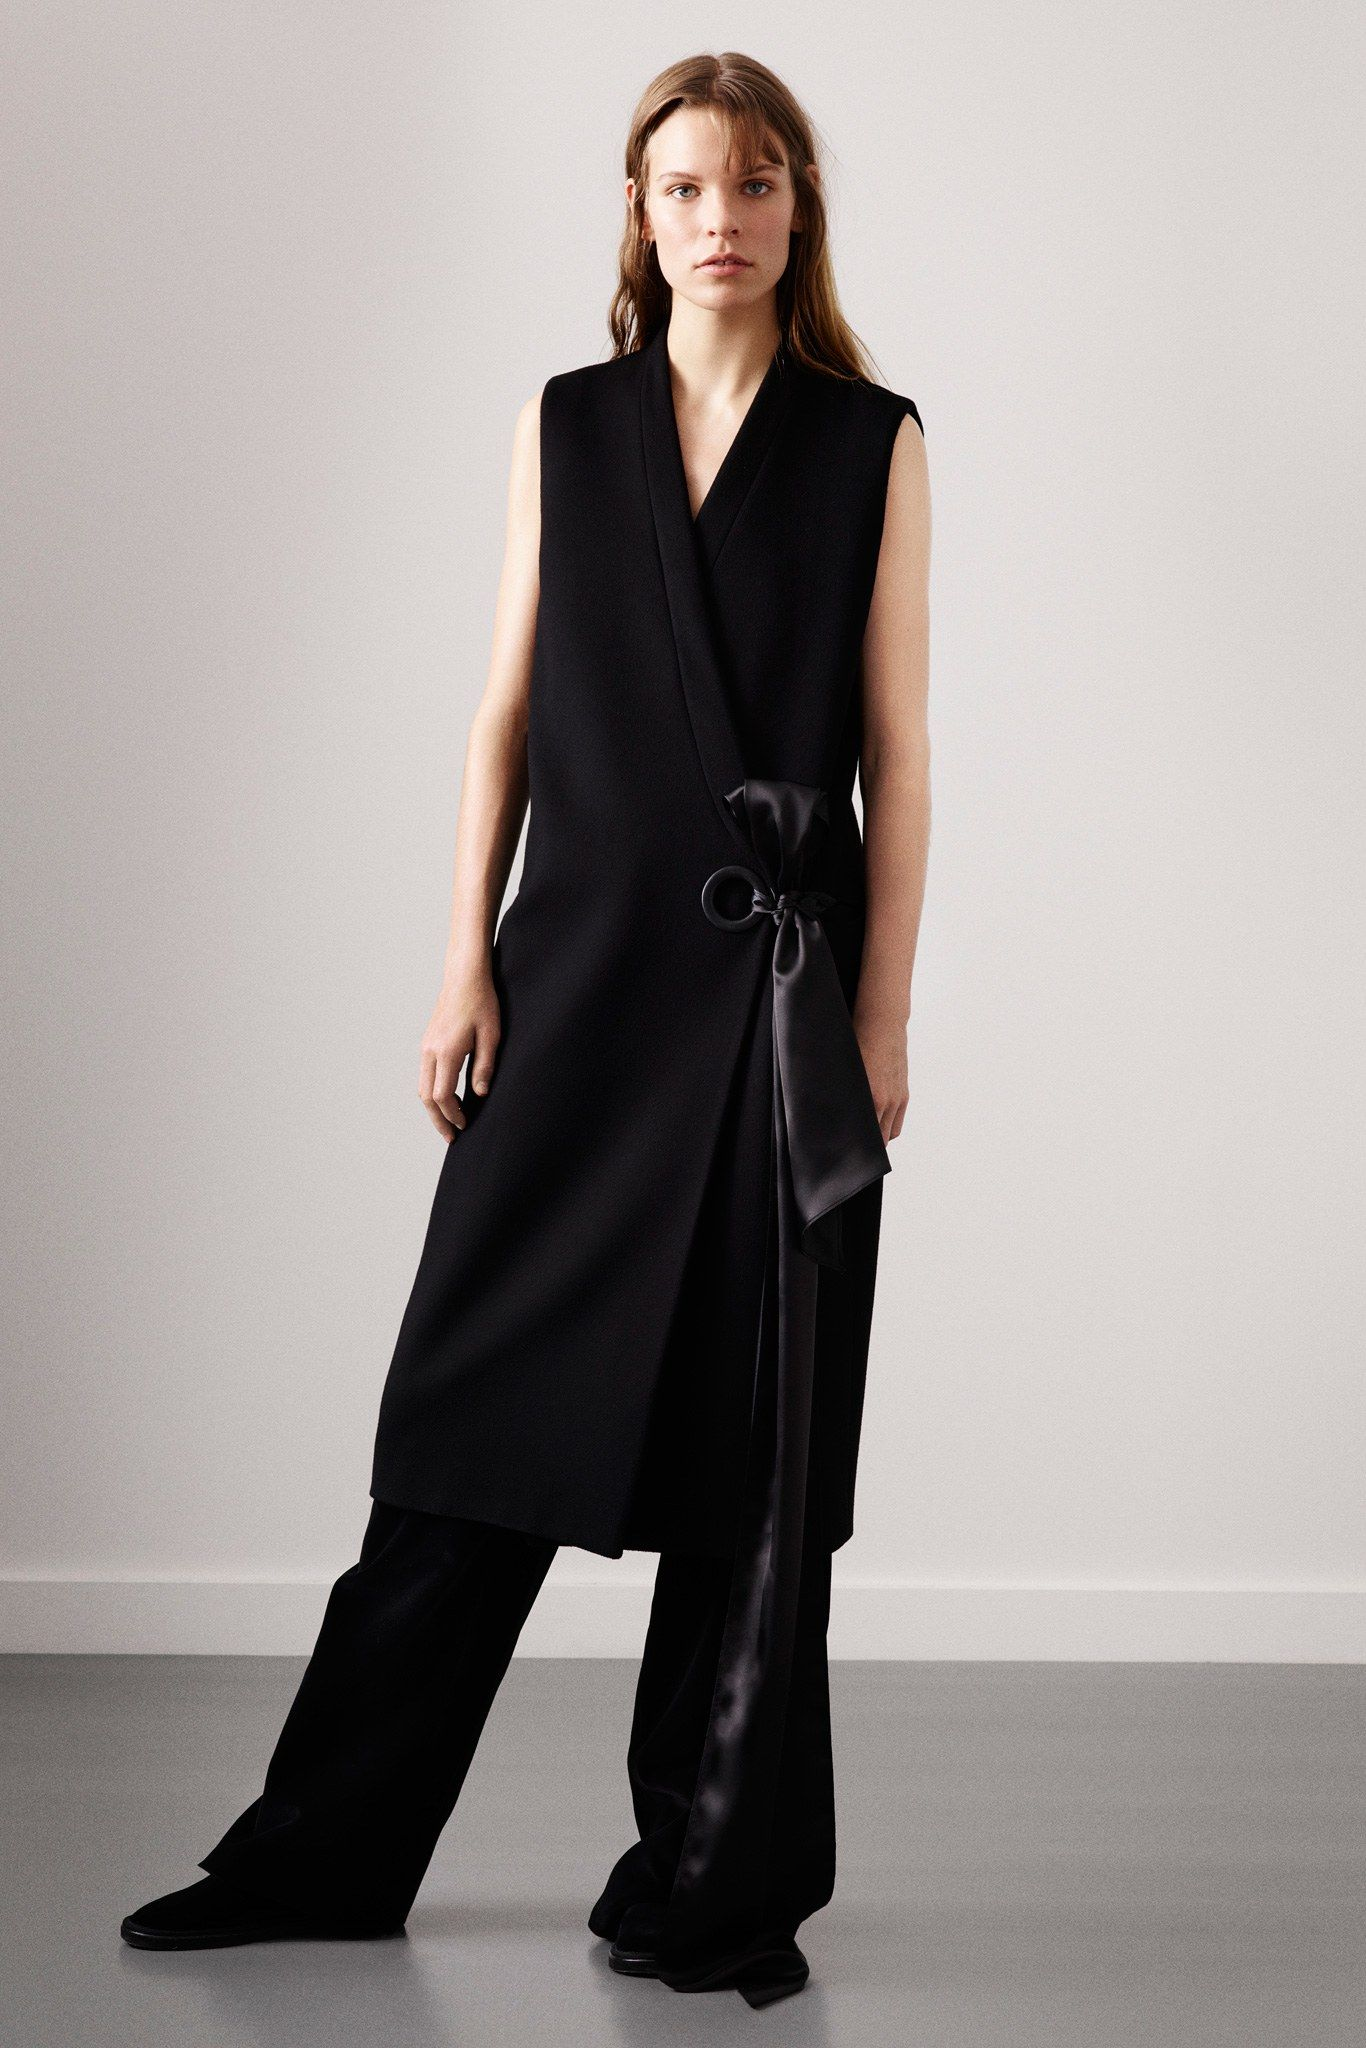 Ports 1961 Fall 2015 Ready-to-Wear Collection Photos - Vogue